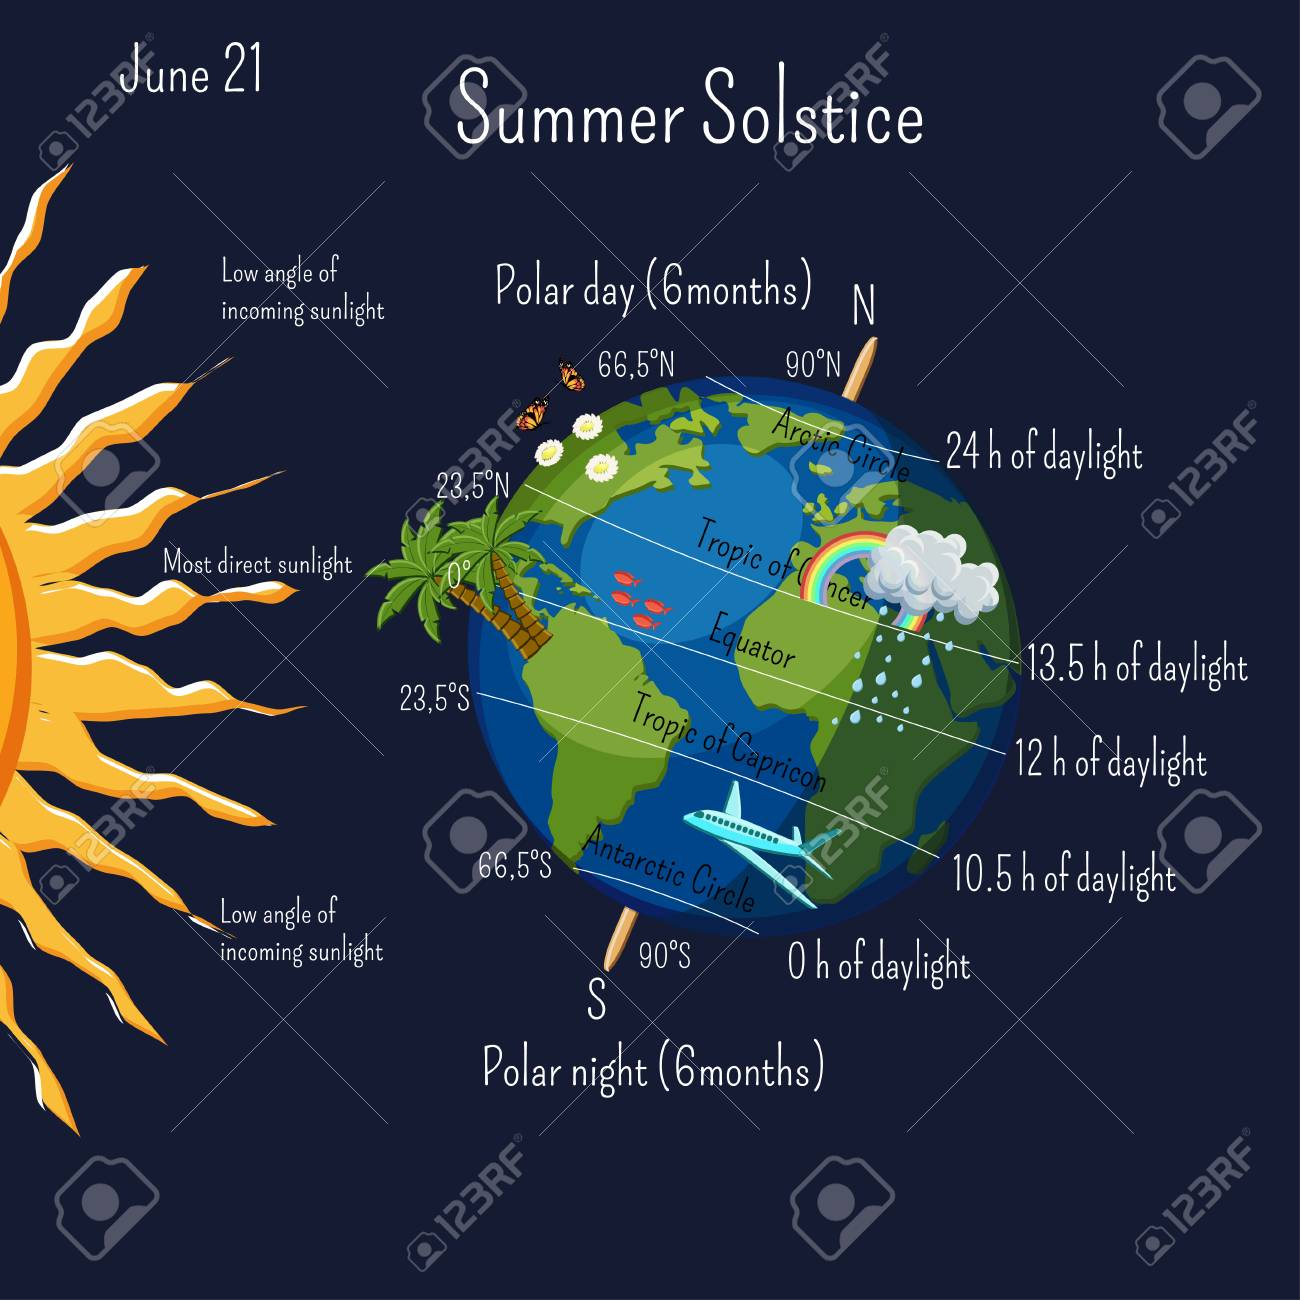 Summer solstice infographic with climate zones and day duration, and some cartoon summer symbols on the planet Earth. - 105338181